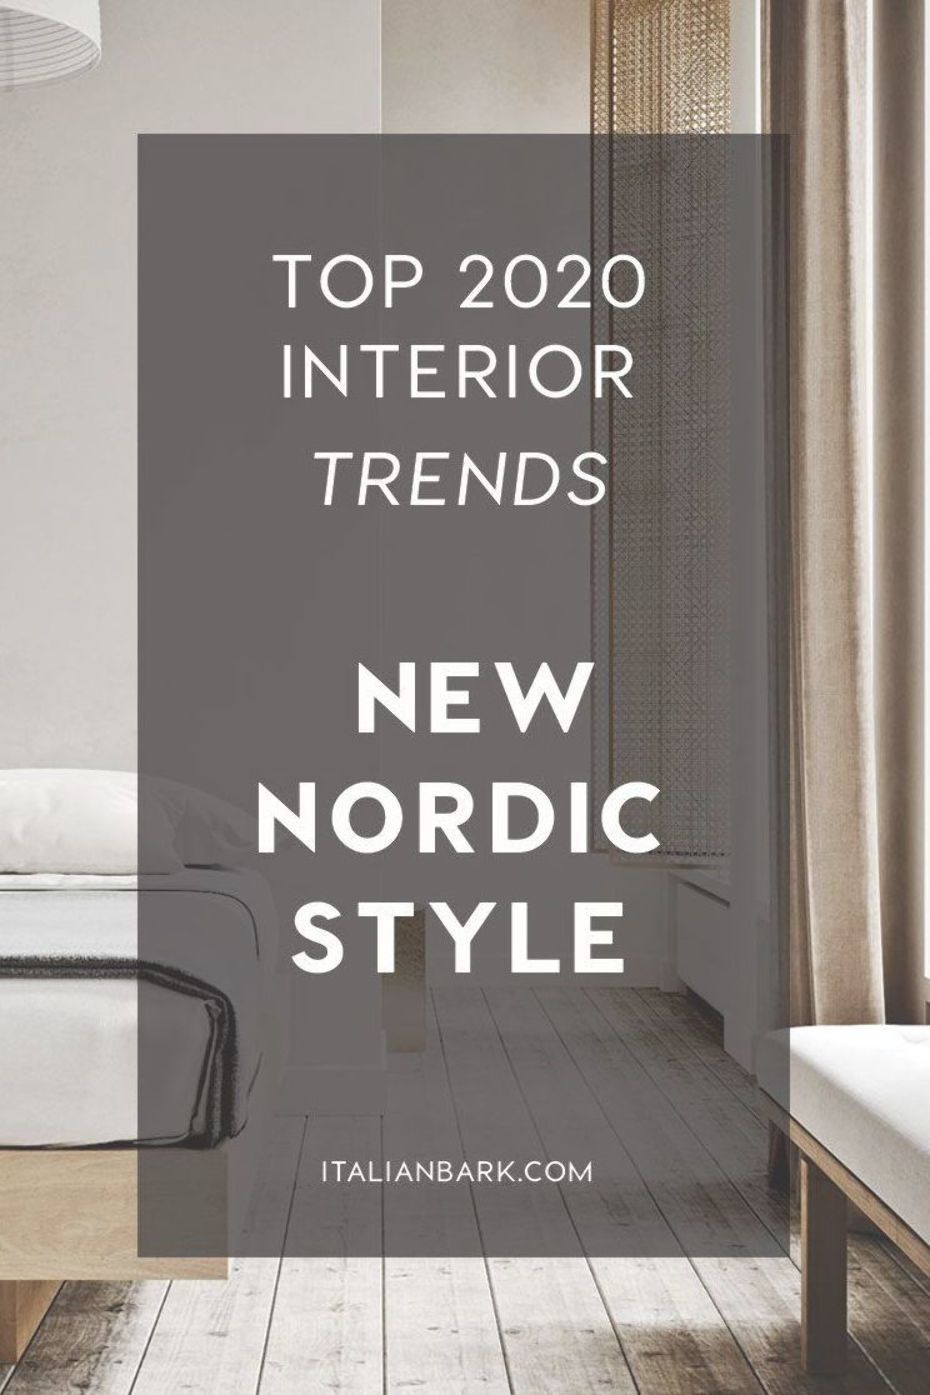 Be Inspired By The New Nordic Interior Trend The Most Trend Scandinavian Style Scandinavian Interior Design Photography Modern Interior Design Interior Trend